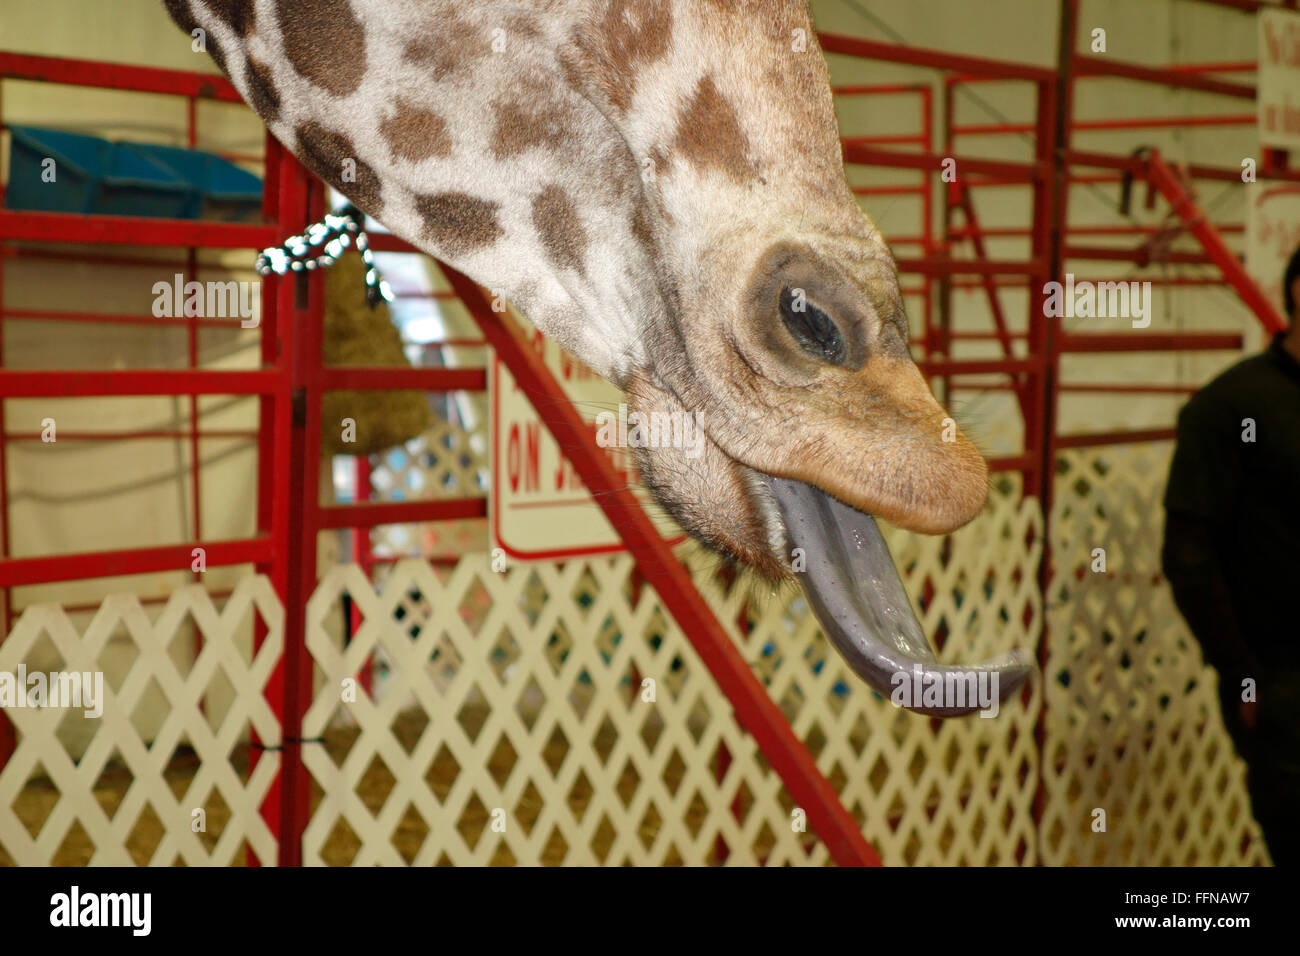 The tongue on a giraffe sticking out - Stock Image